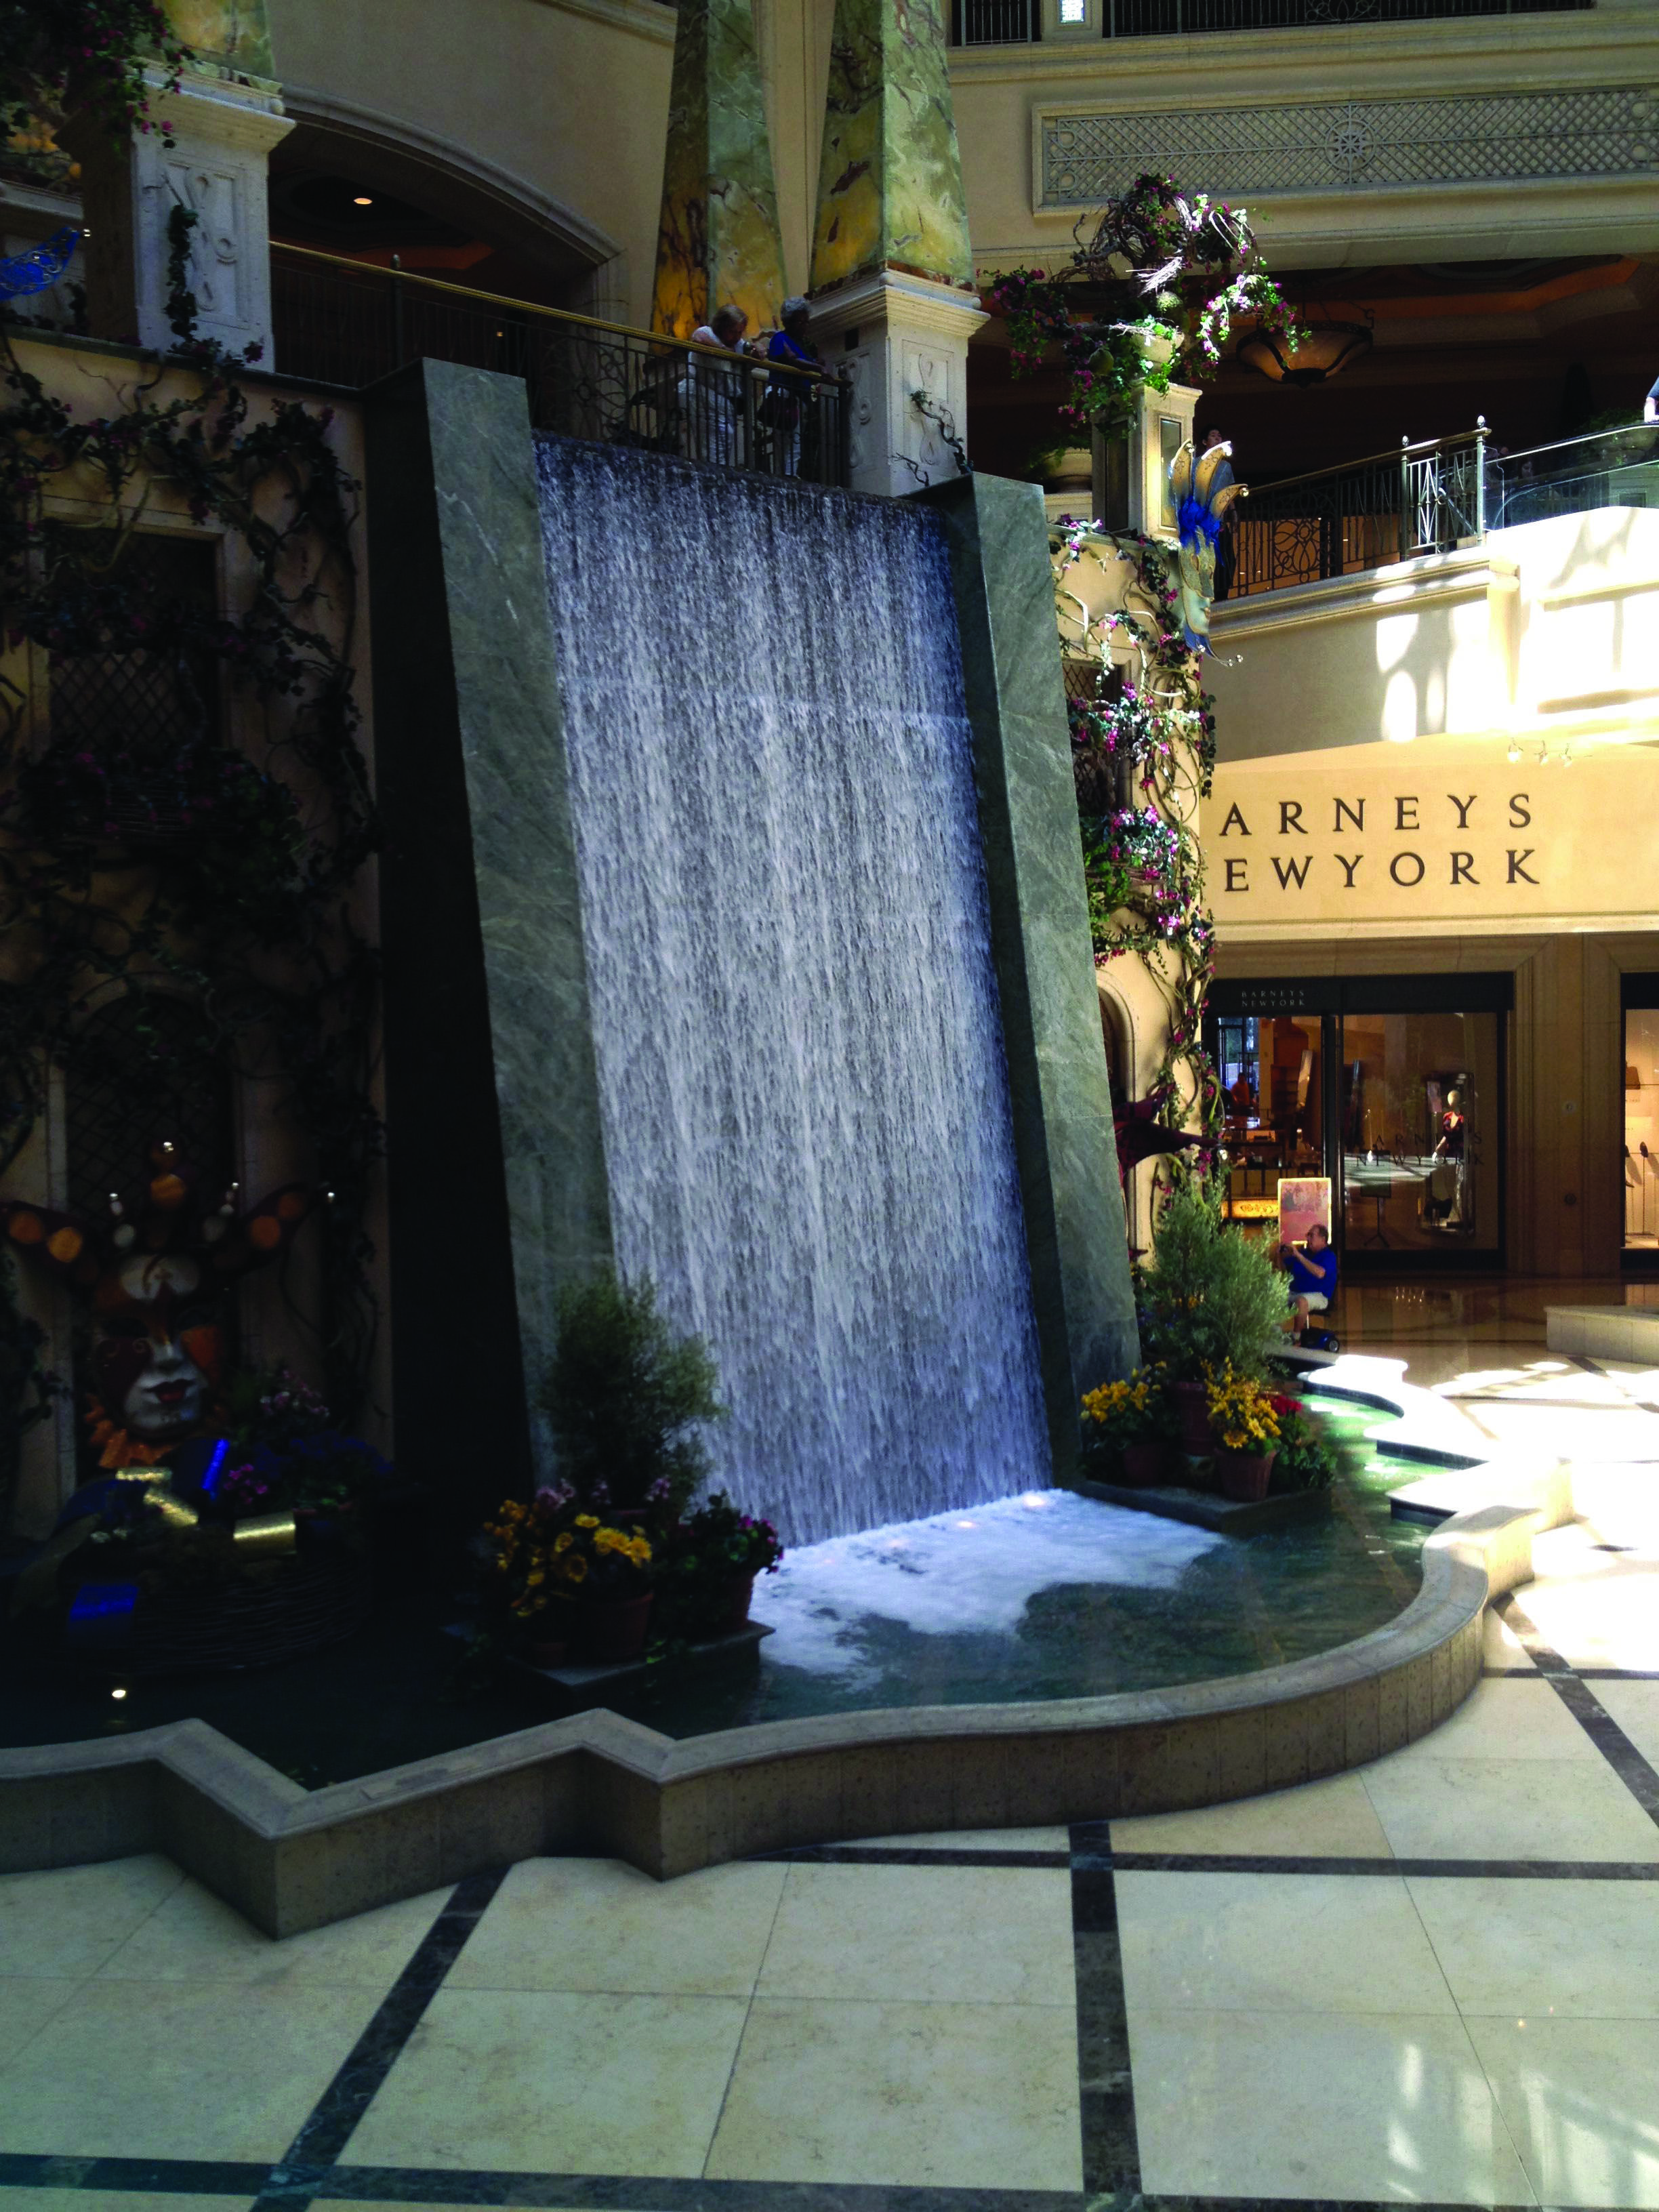 Unique indoor water features townsville for your cozy home